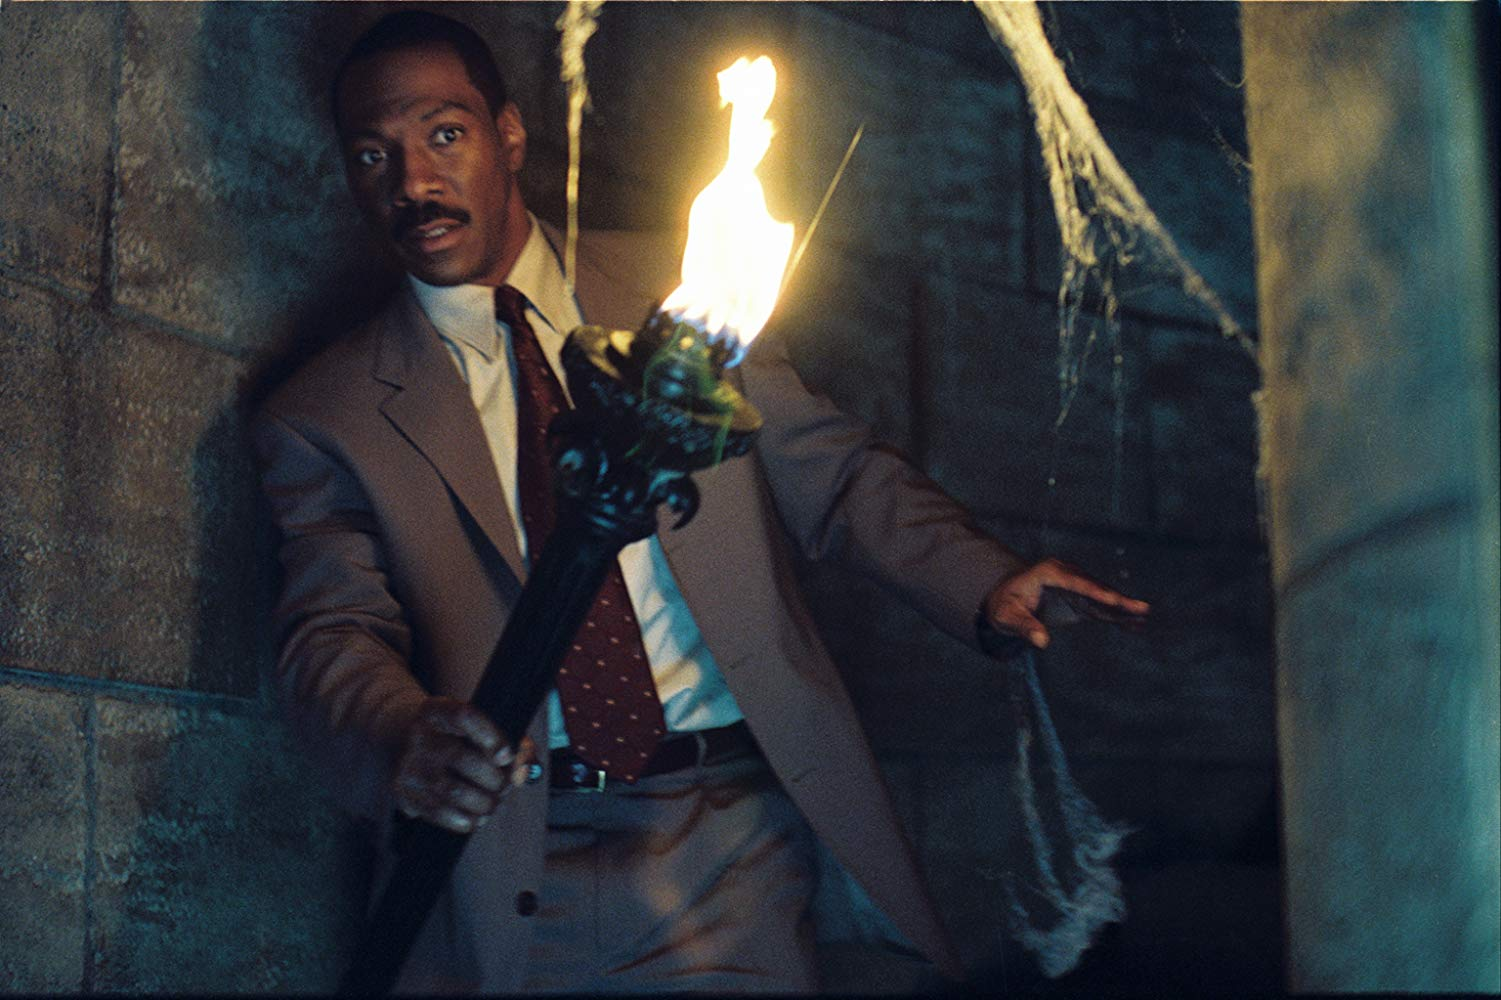 the haunted mansion movie, eddie murphy